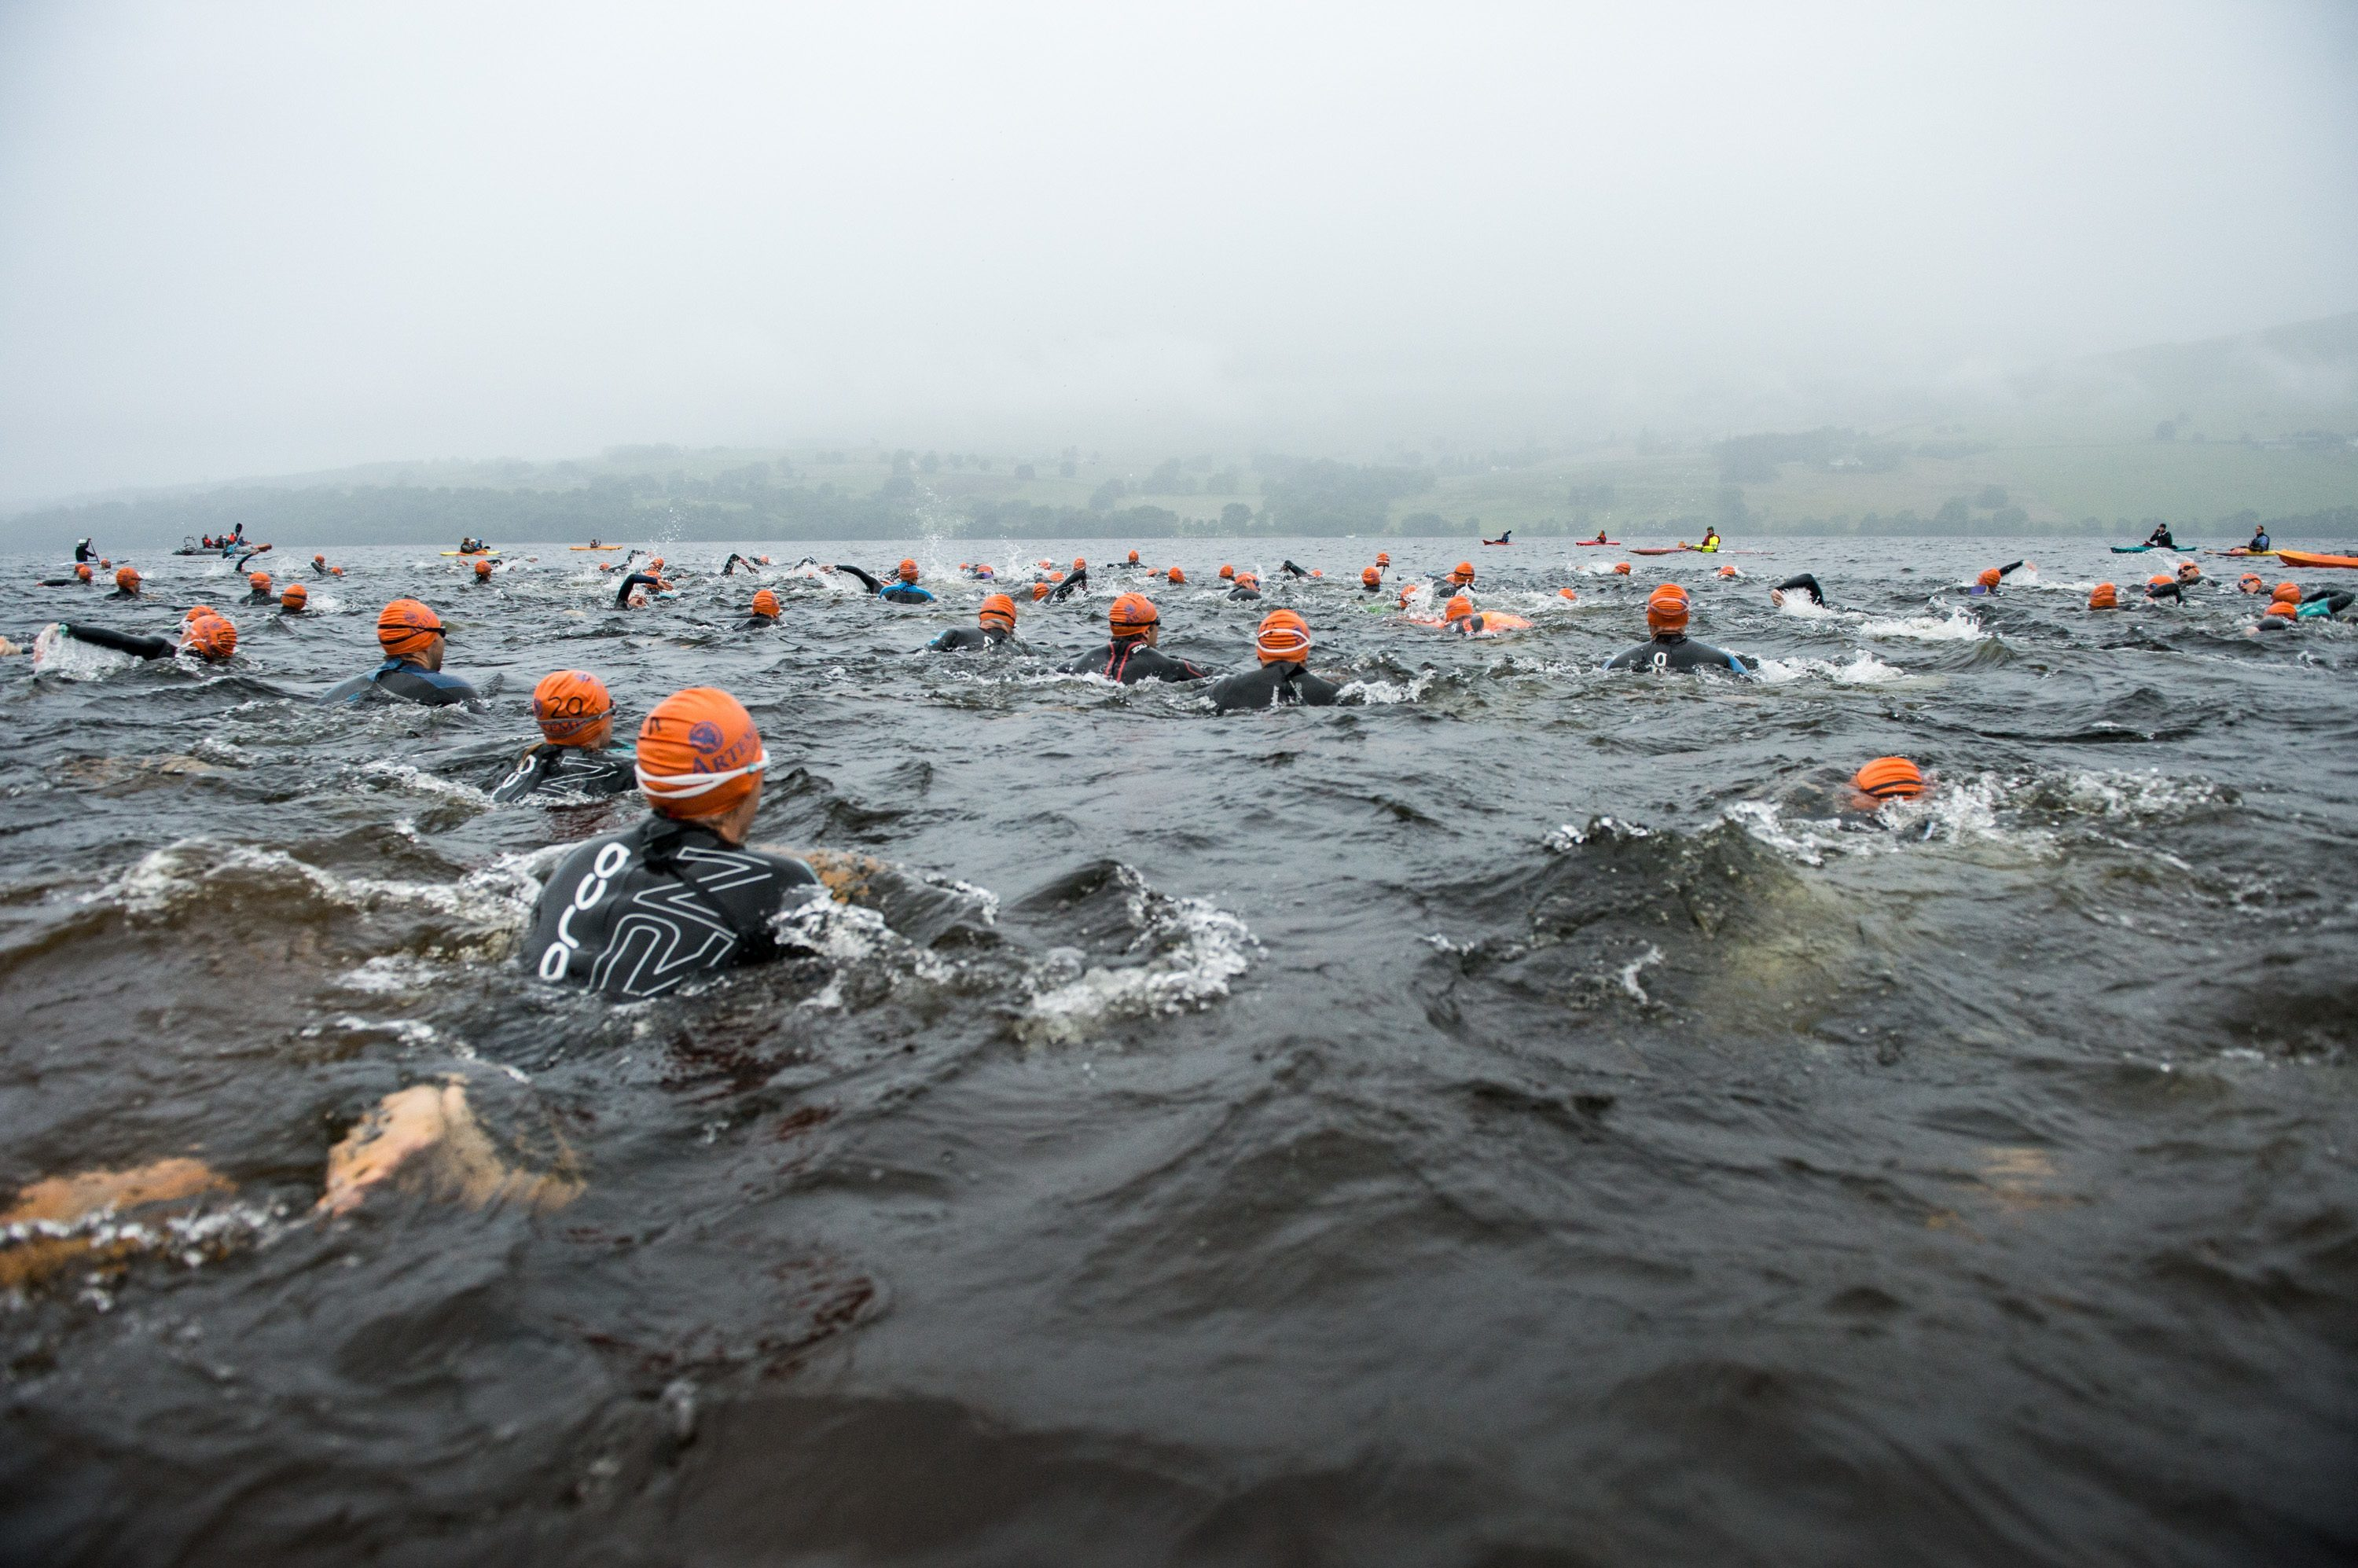 Competitors faced challenging conditions on the course.